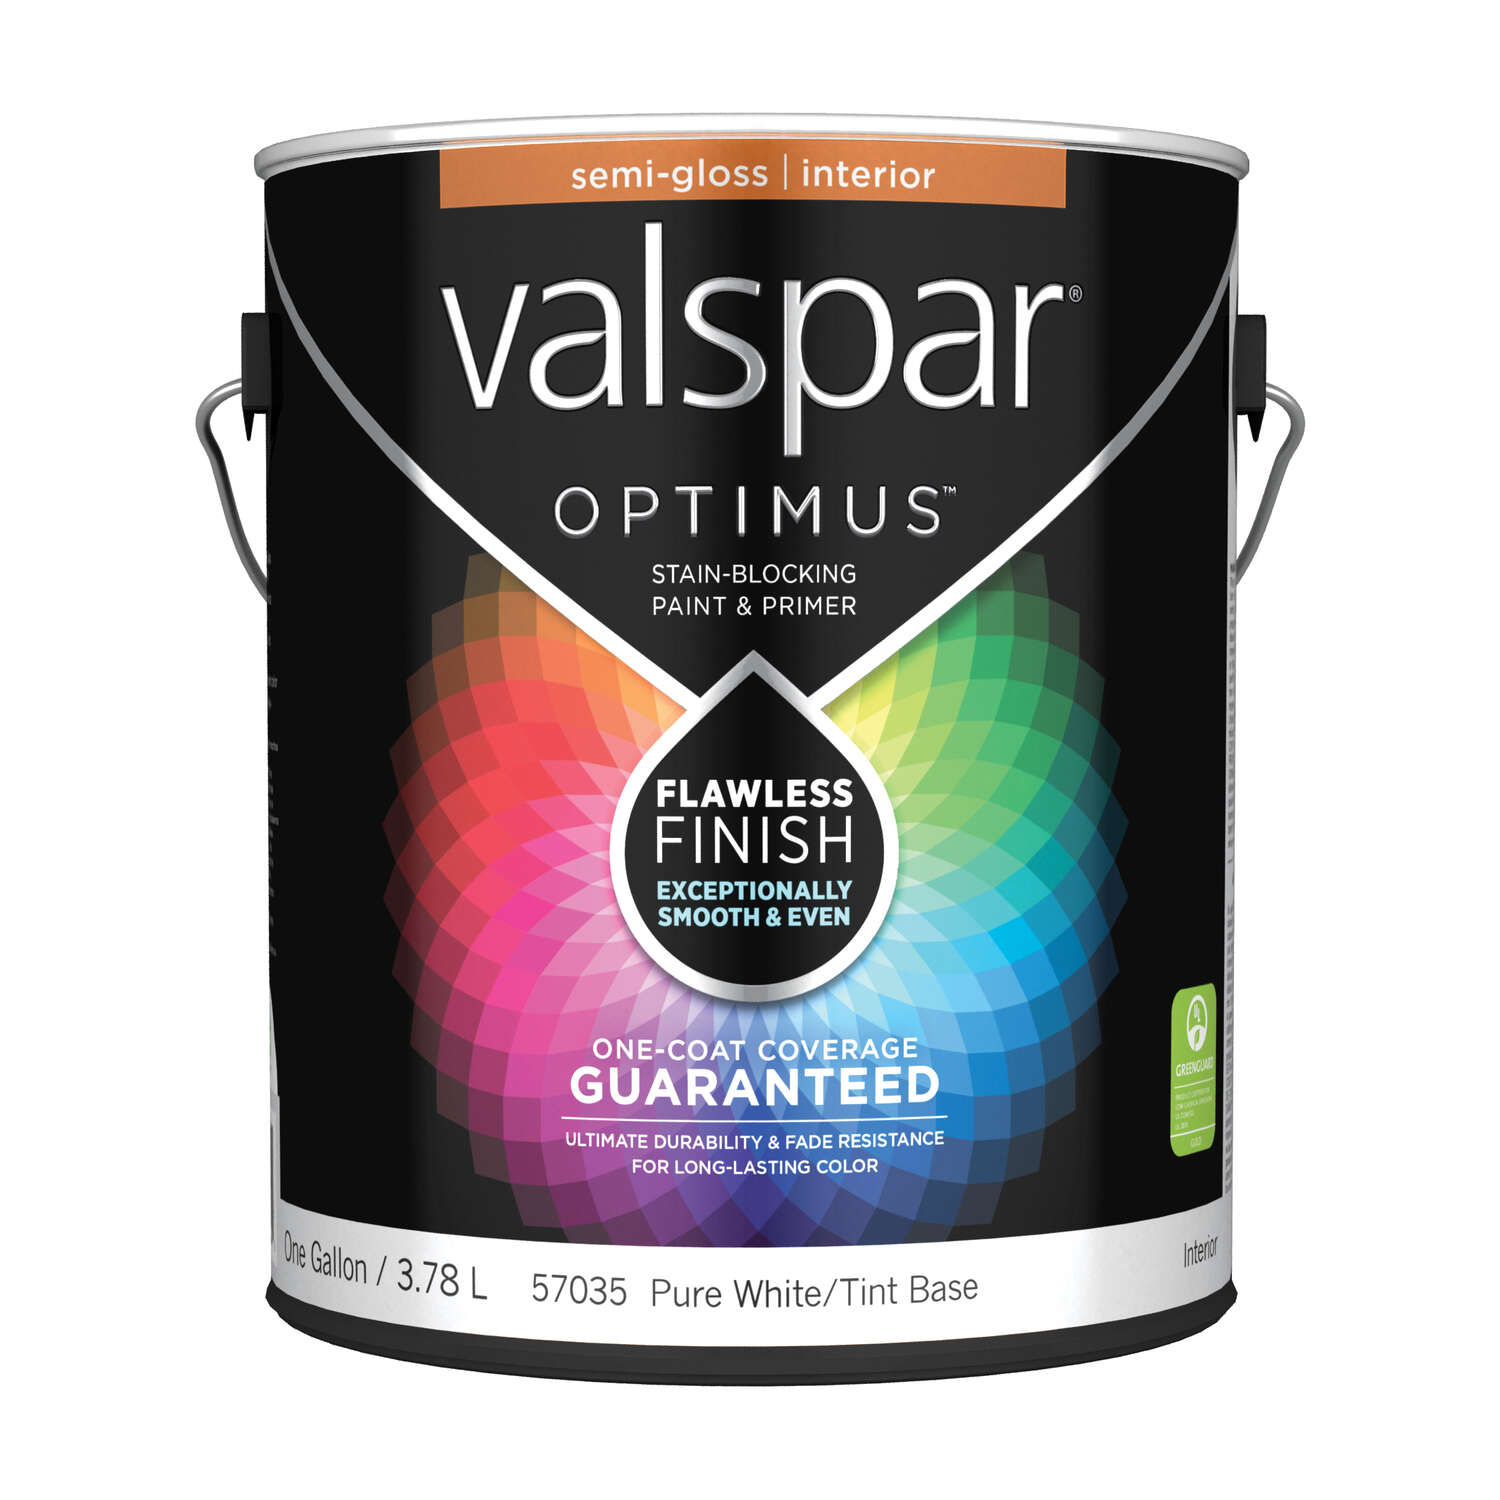 Valspar  Optimus  Semi-Gloss  Basic White  Tint Base  Acrylic Latex  Paint and Primer  Indoor  1 gal